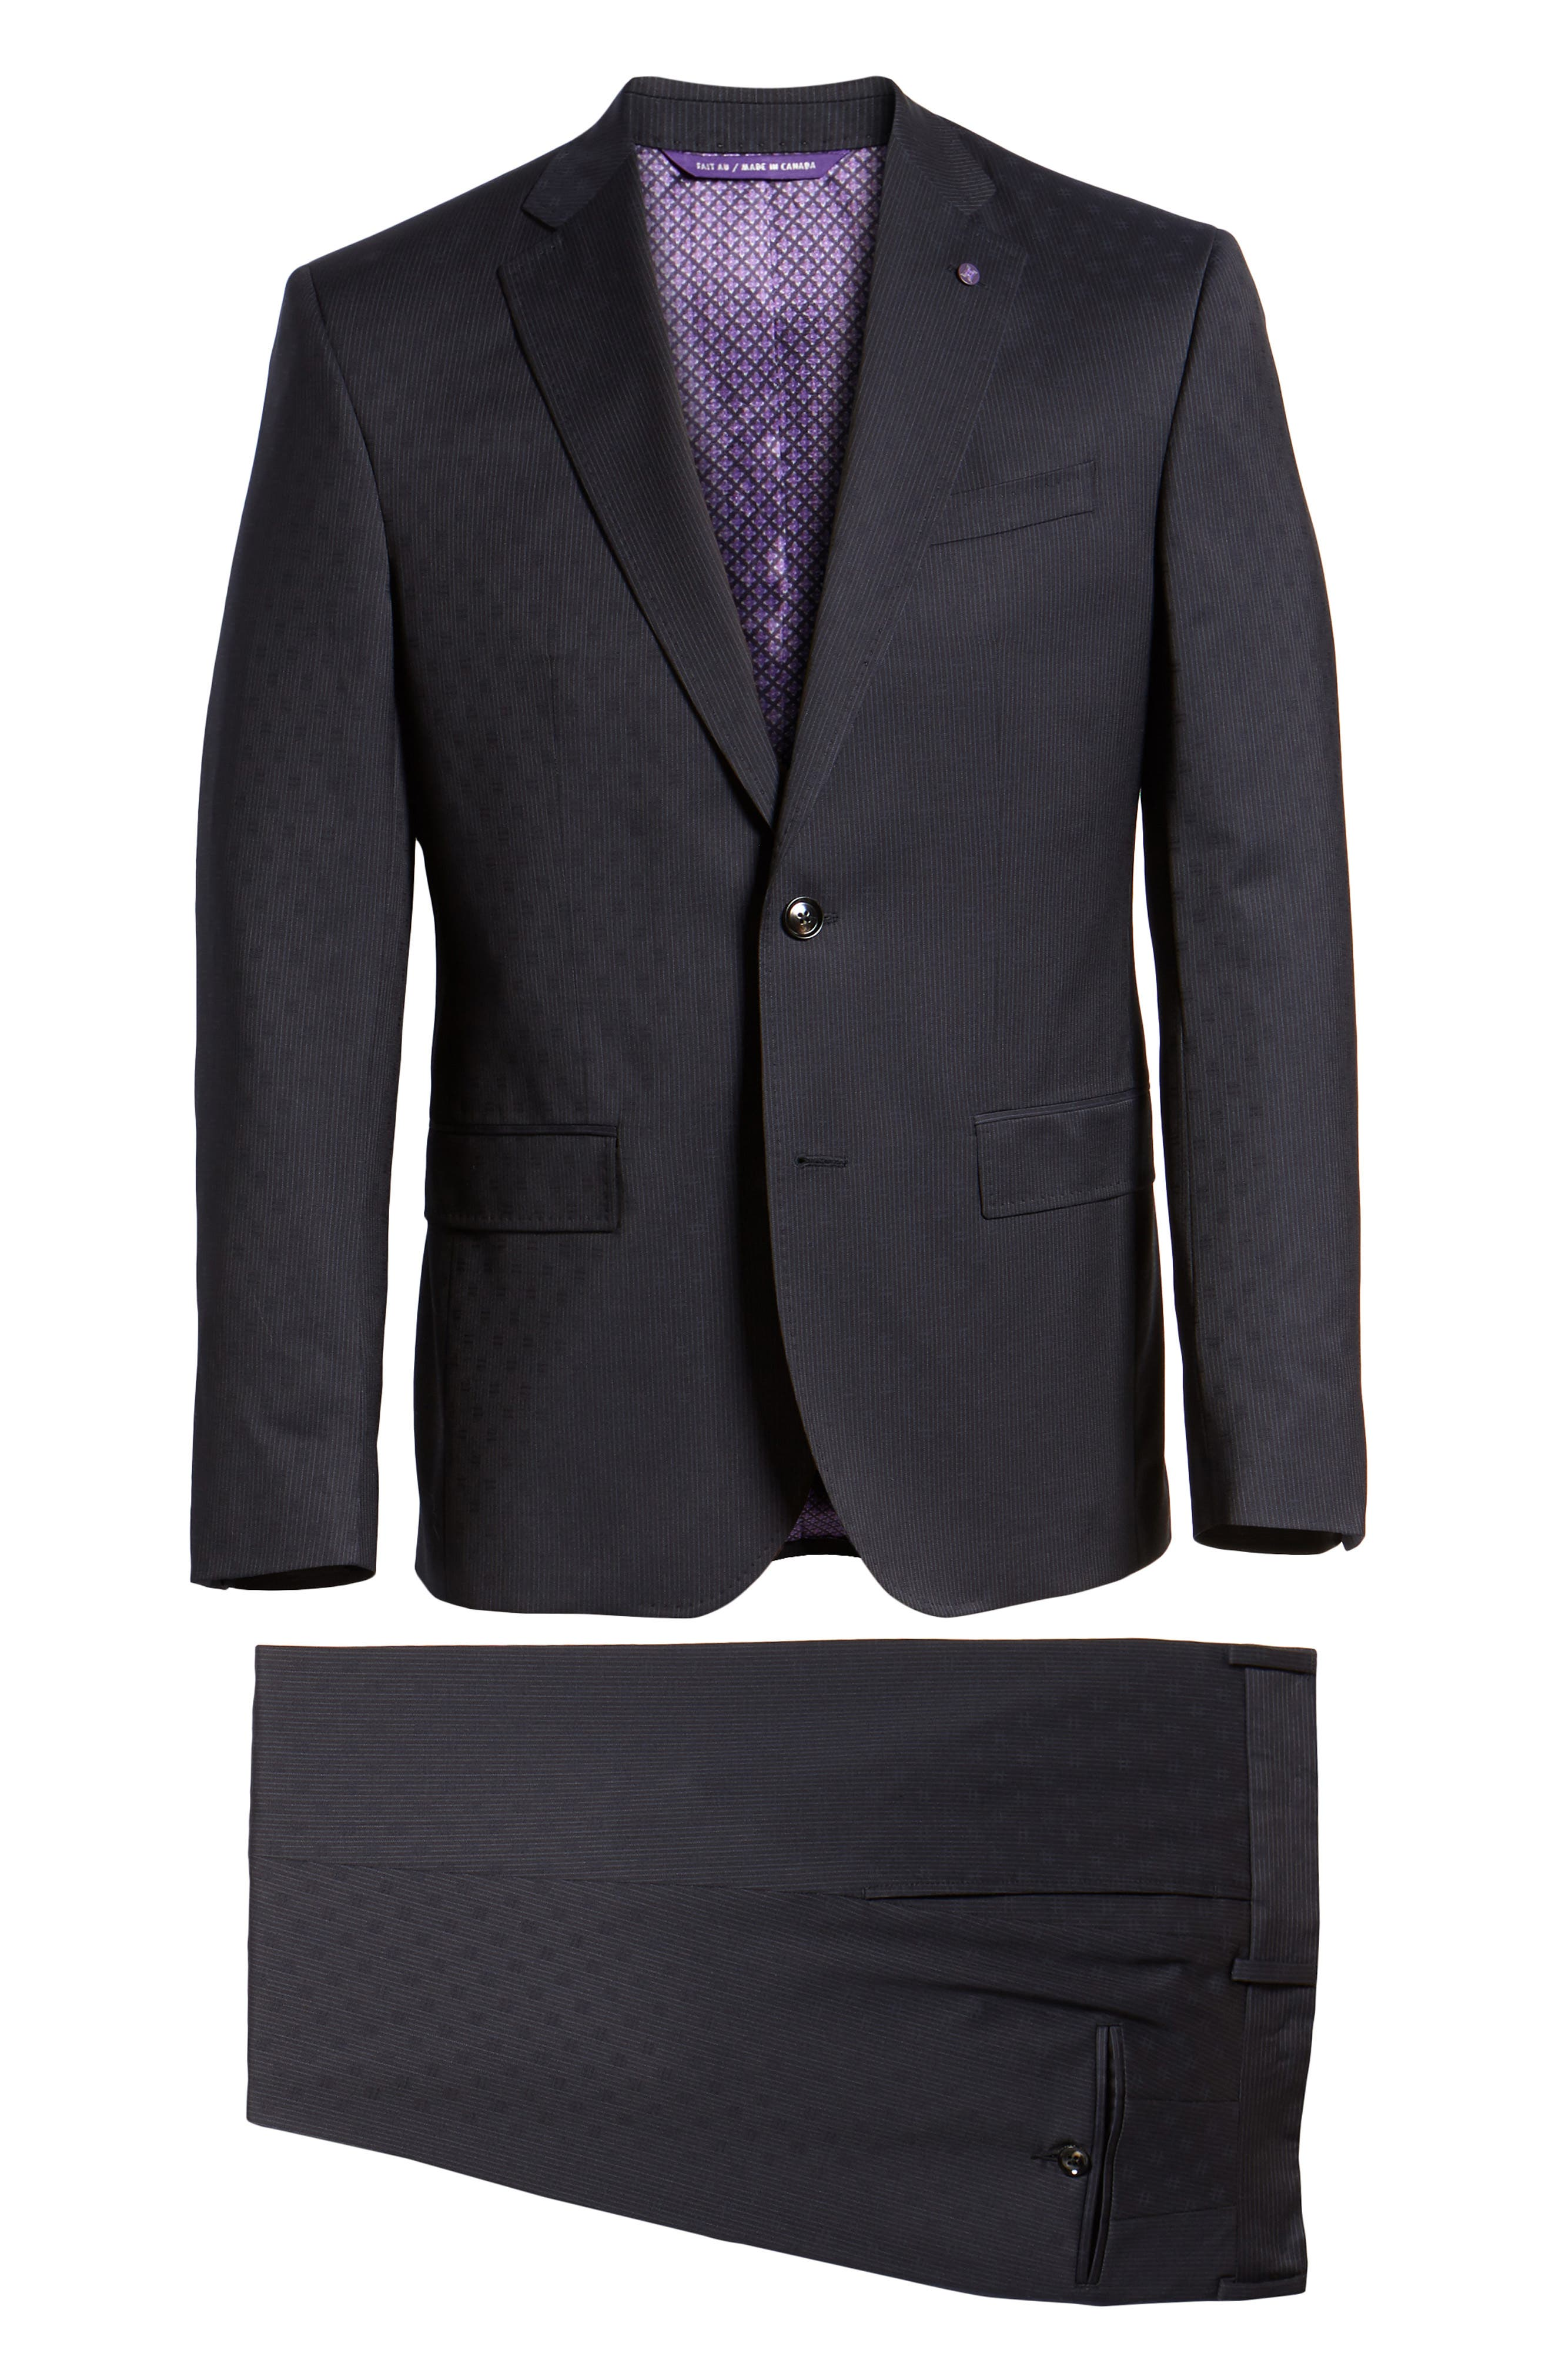 Roger Extra Trim Fit Stripe Wool Suit,                             Alternate thumbnail 7, color,                             NAVY STRIPE